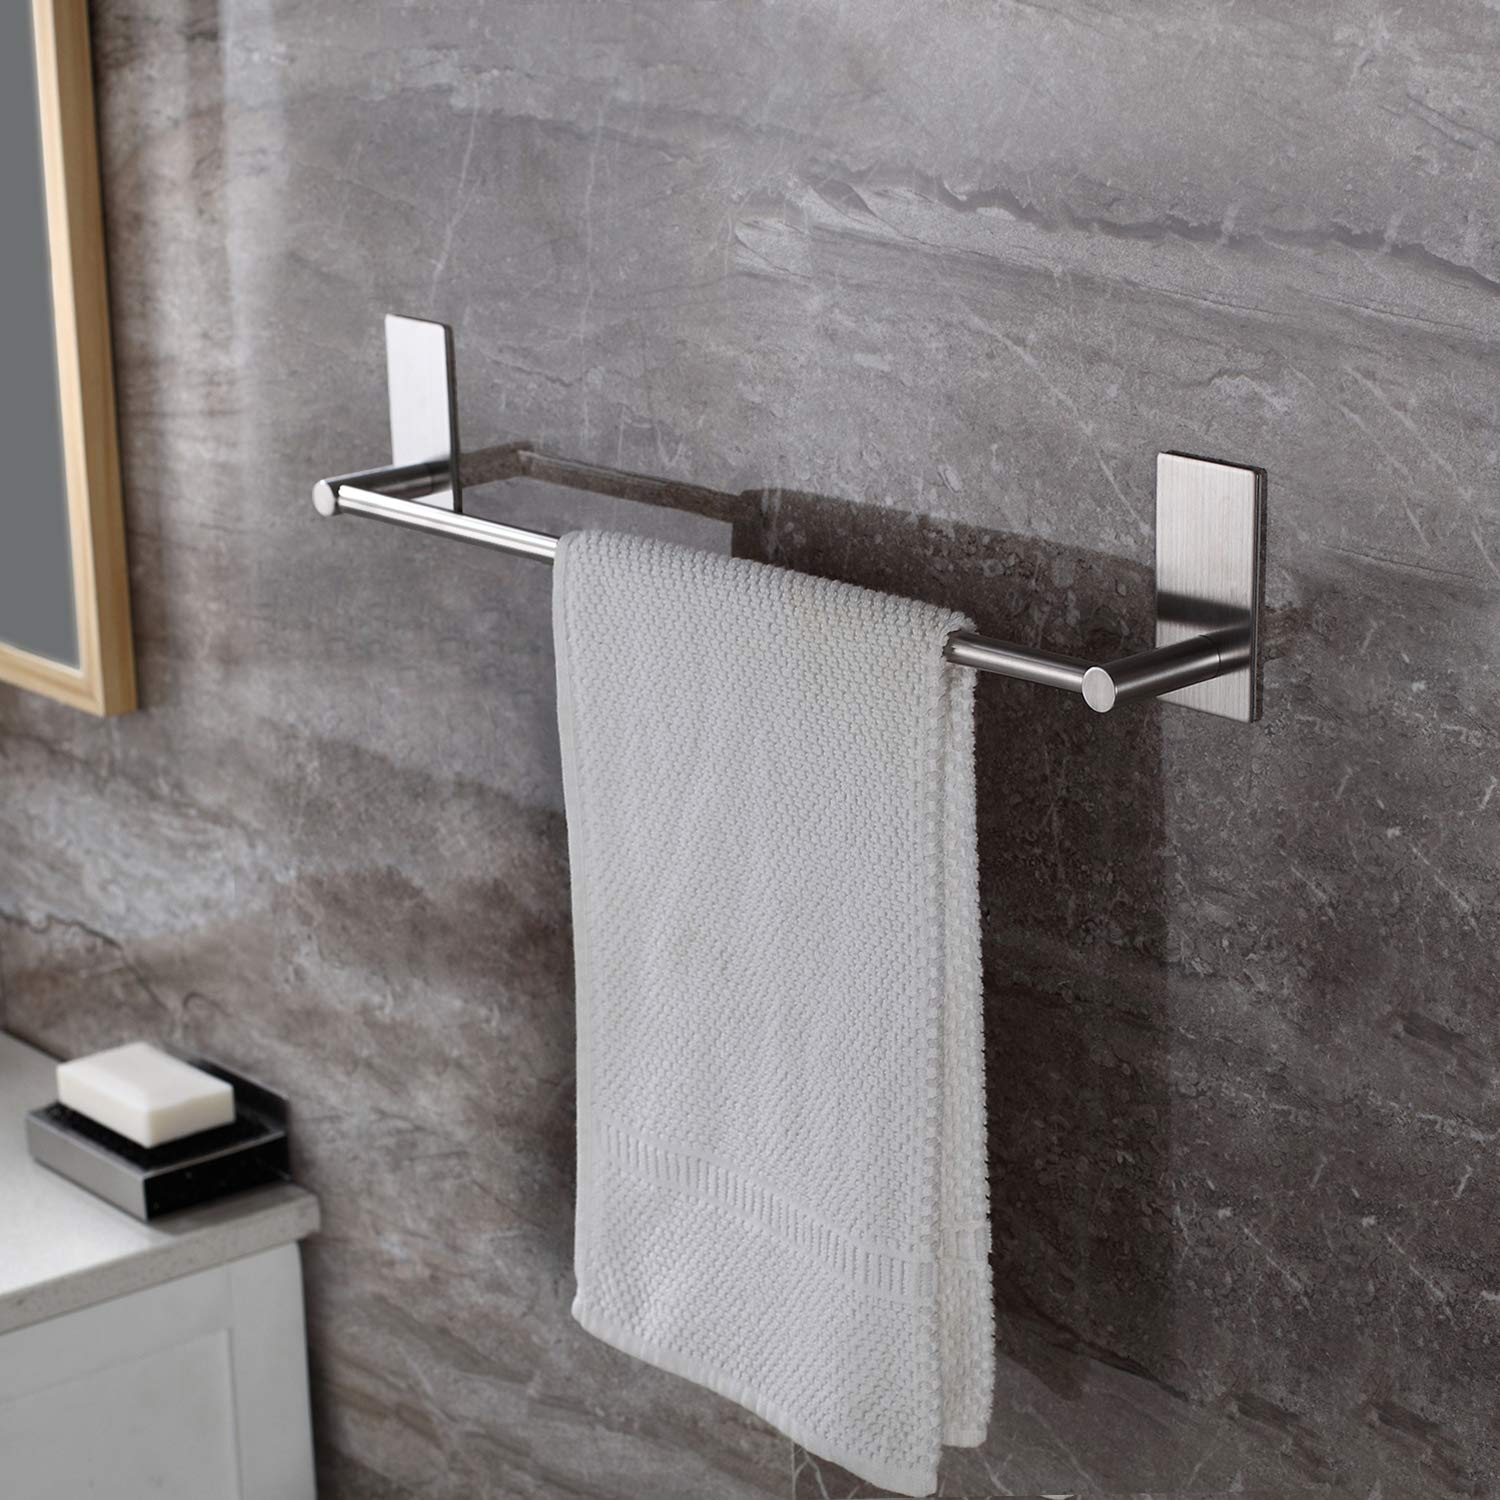 Taozun Self Adhesive 16-Inch Bathroom Towel Bar Brushed SUS 304 Stainless Steel Bath Wall Shelf Rack Hanging Towel Stick On Sticky Hanger Contemporary Style by Taozun